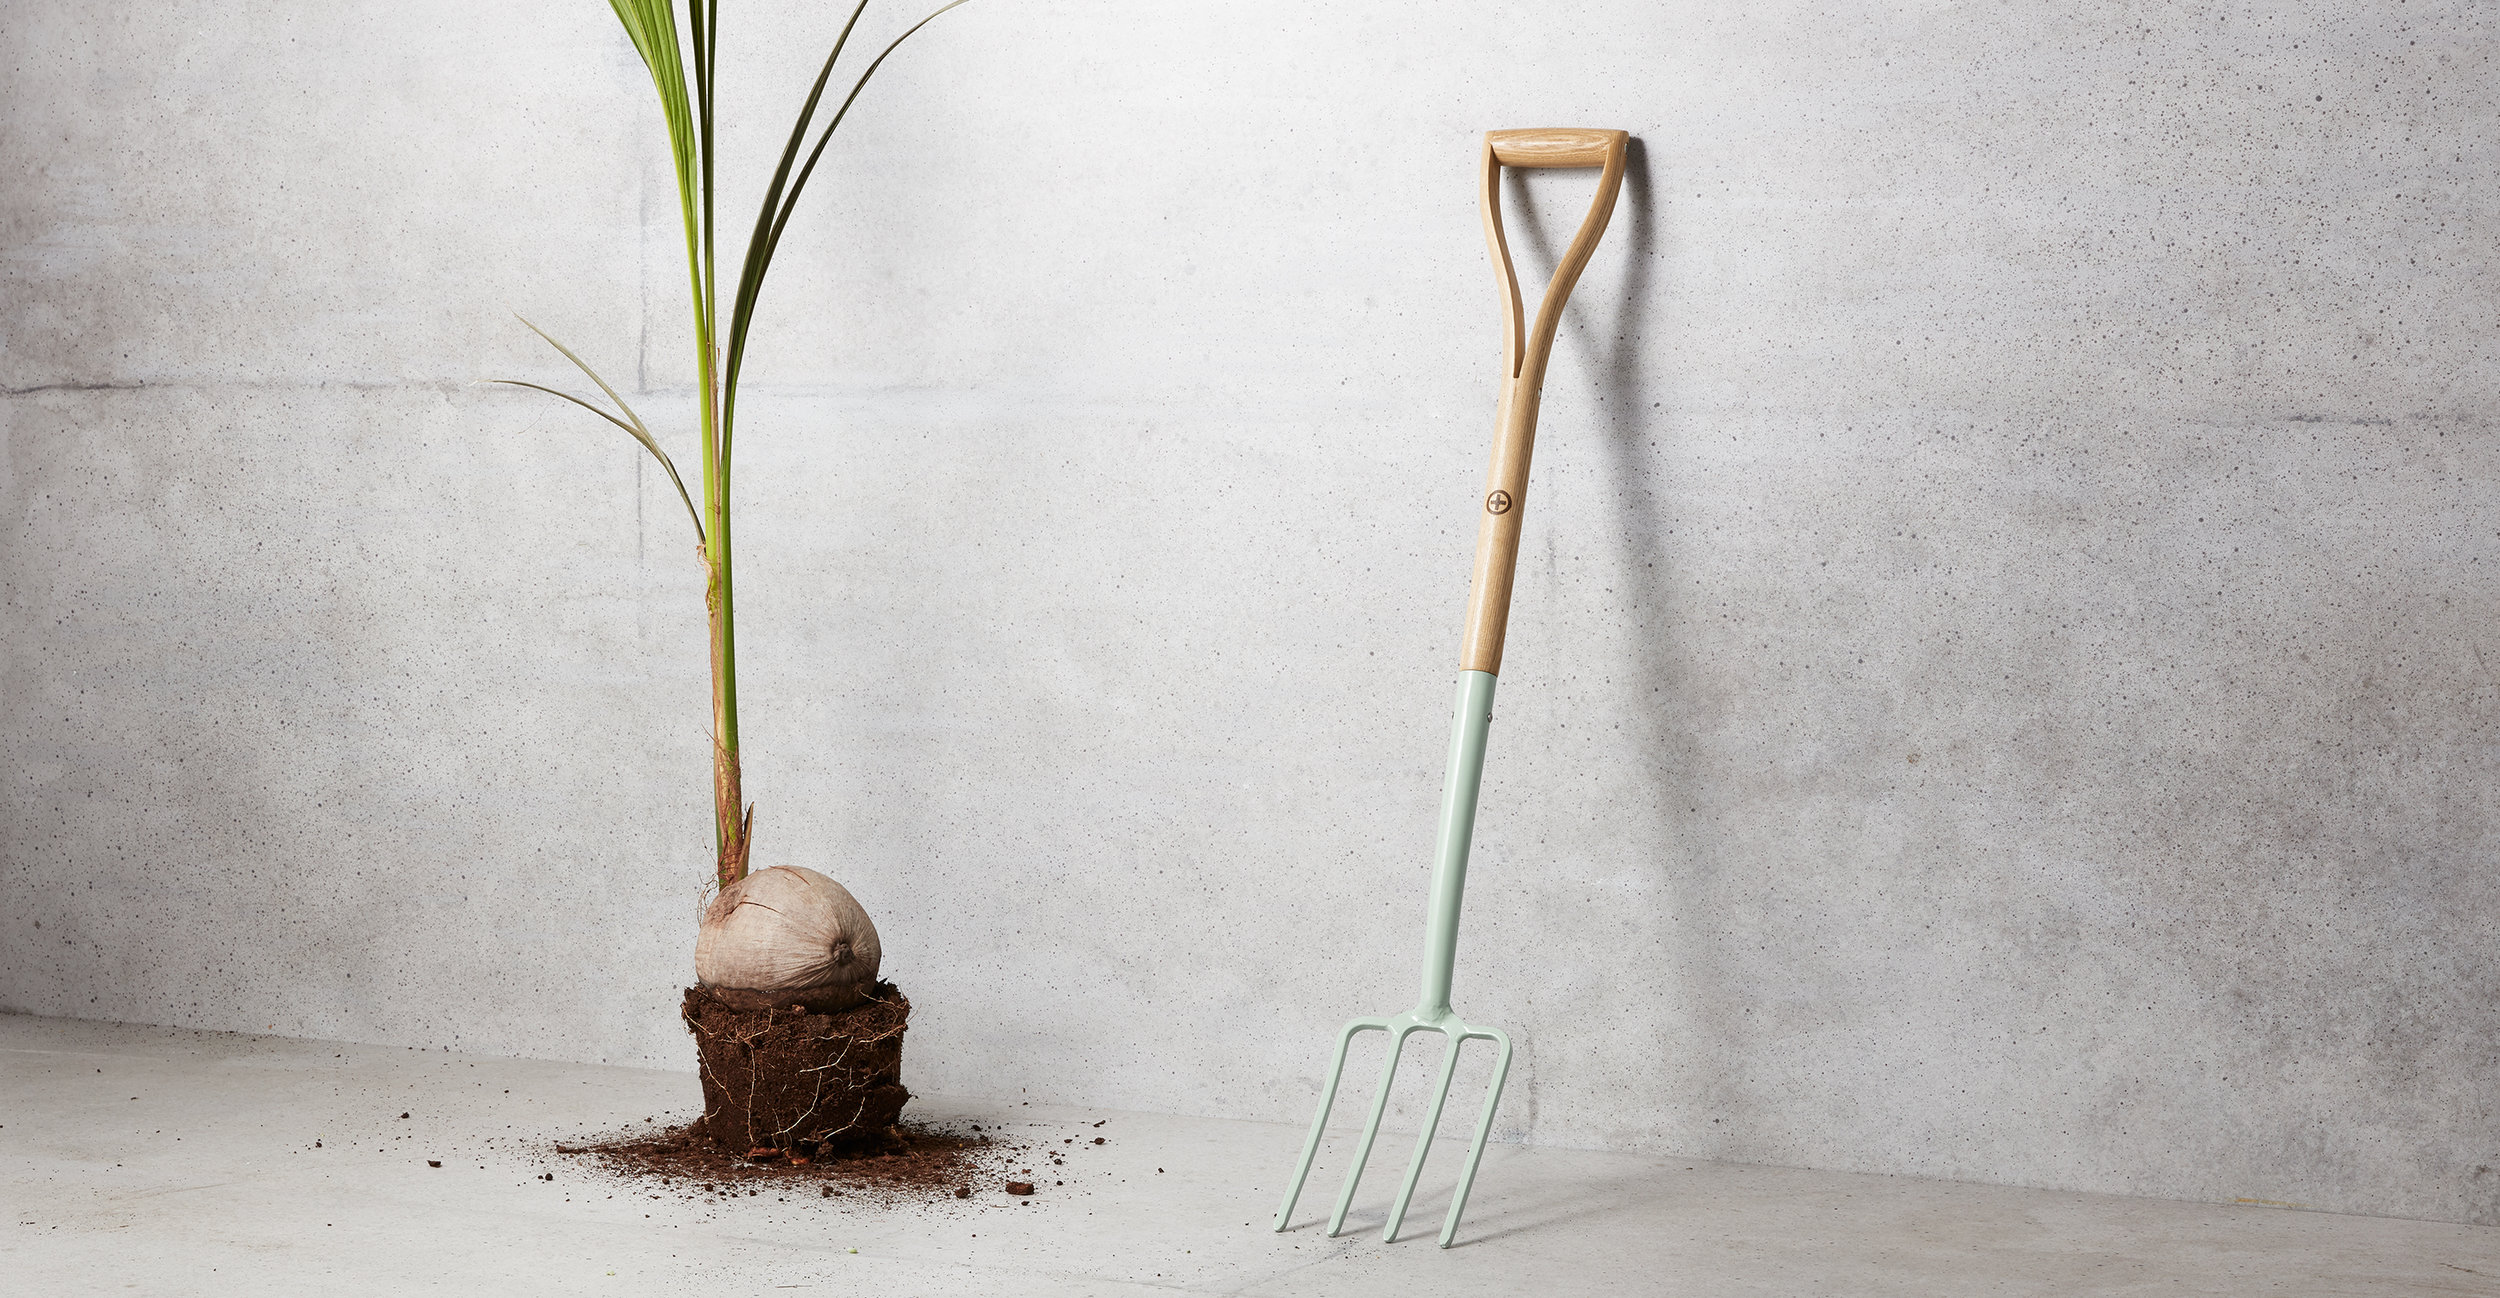 Art direction for a product shoot surrounding outdoor gardening pieces.